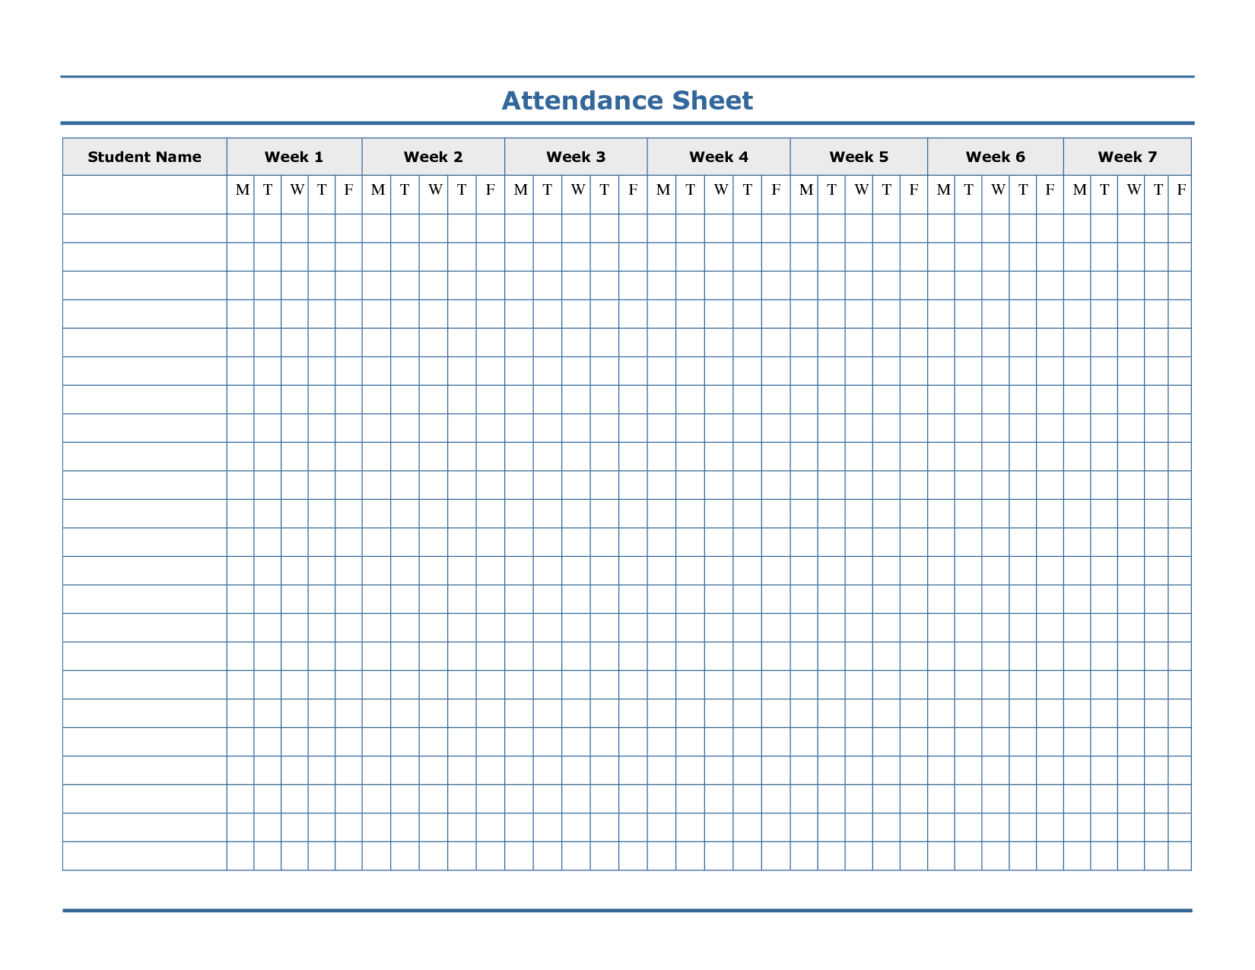 Attendance Tracking Spreadsheet Pertaining To Employee Attendance Tracking Spreadsheet As Well Template With